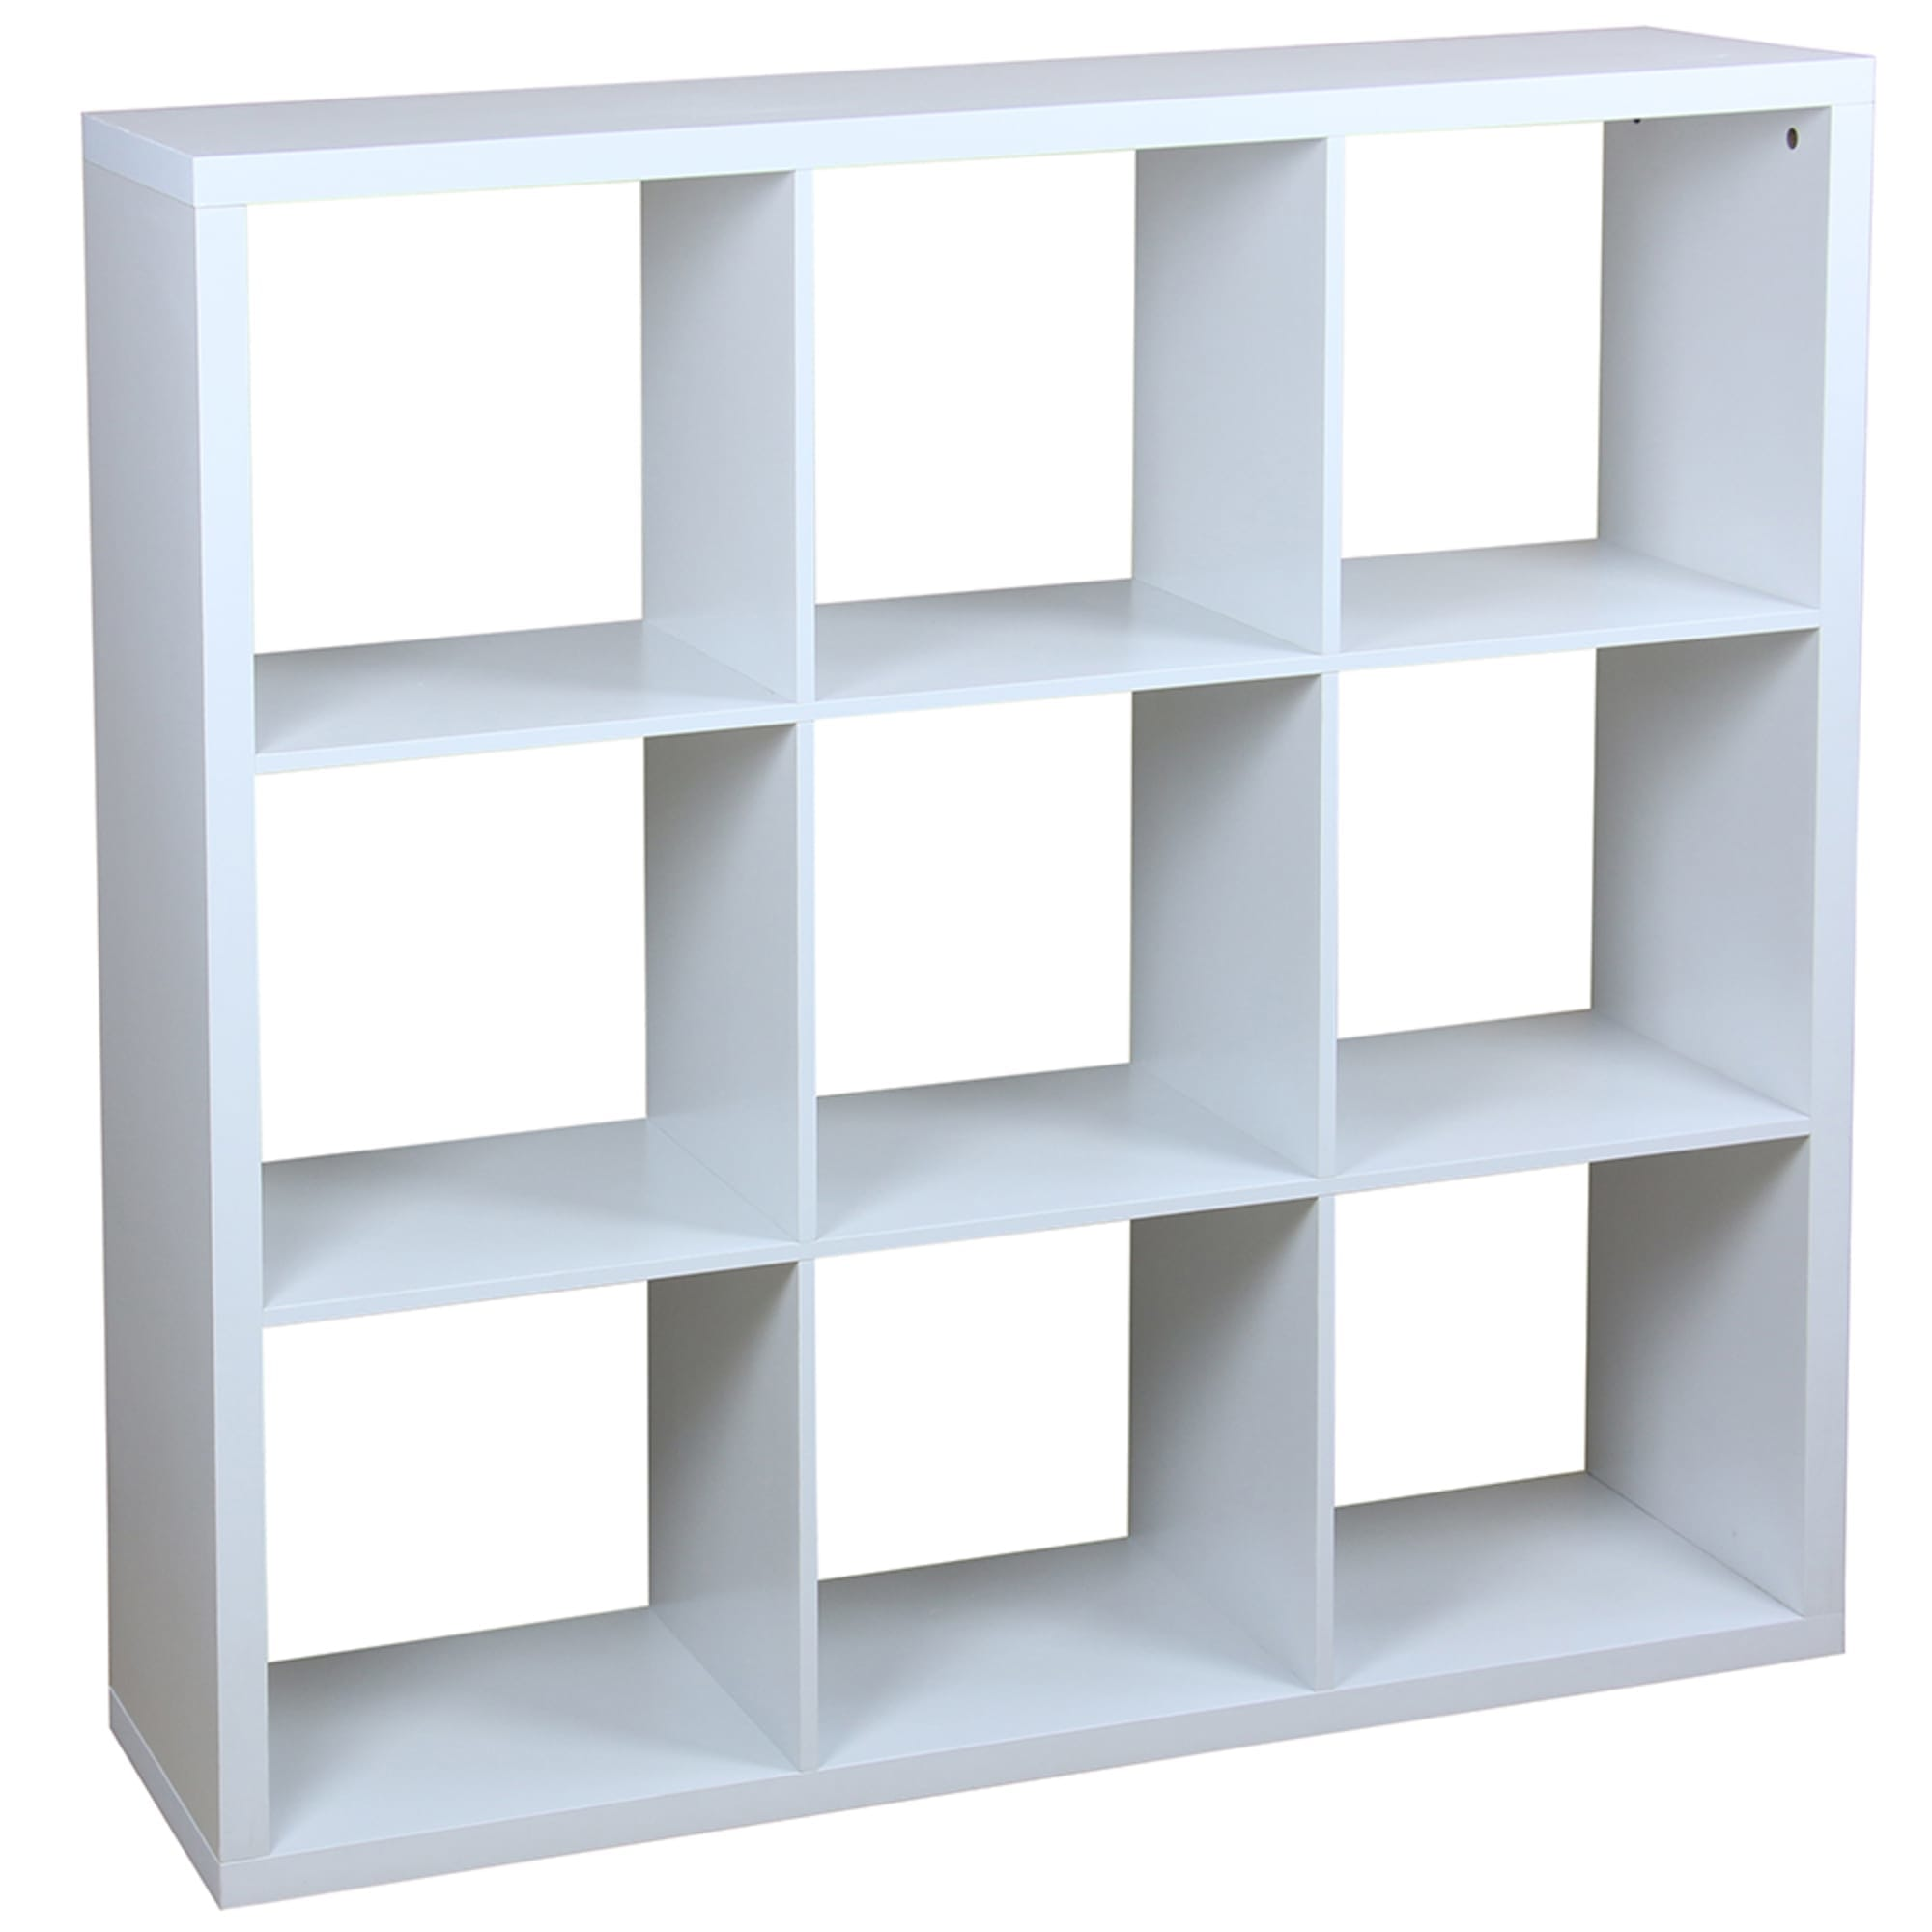 9 Open Cube Organizing Wood Storage Shelf, White